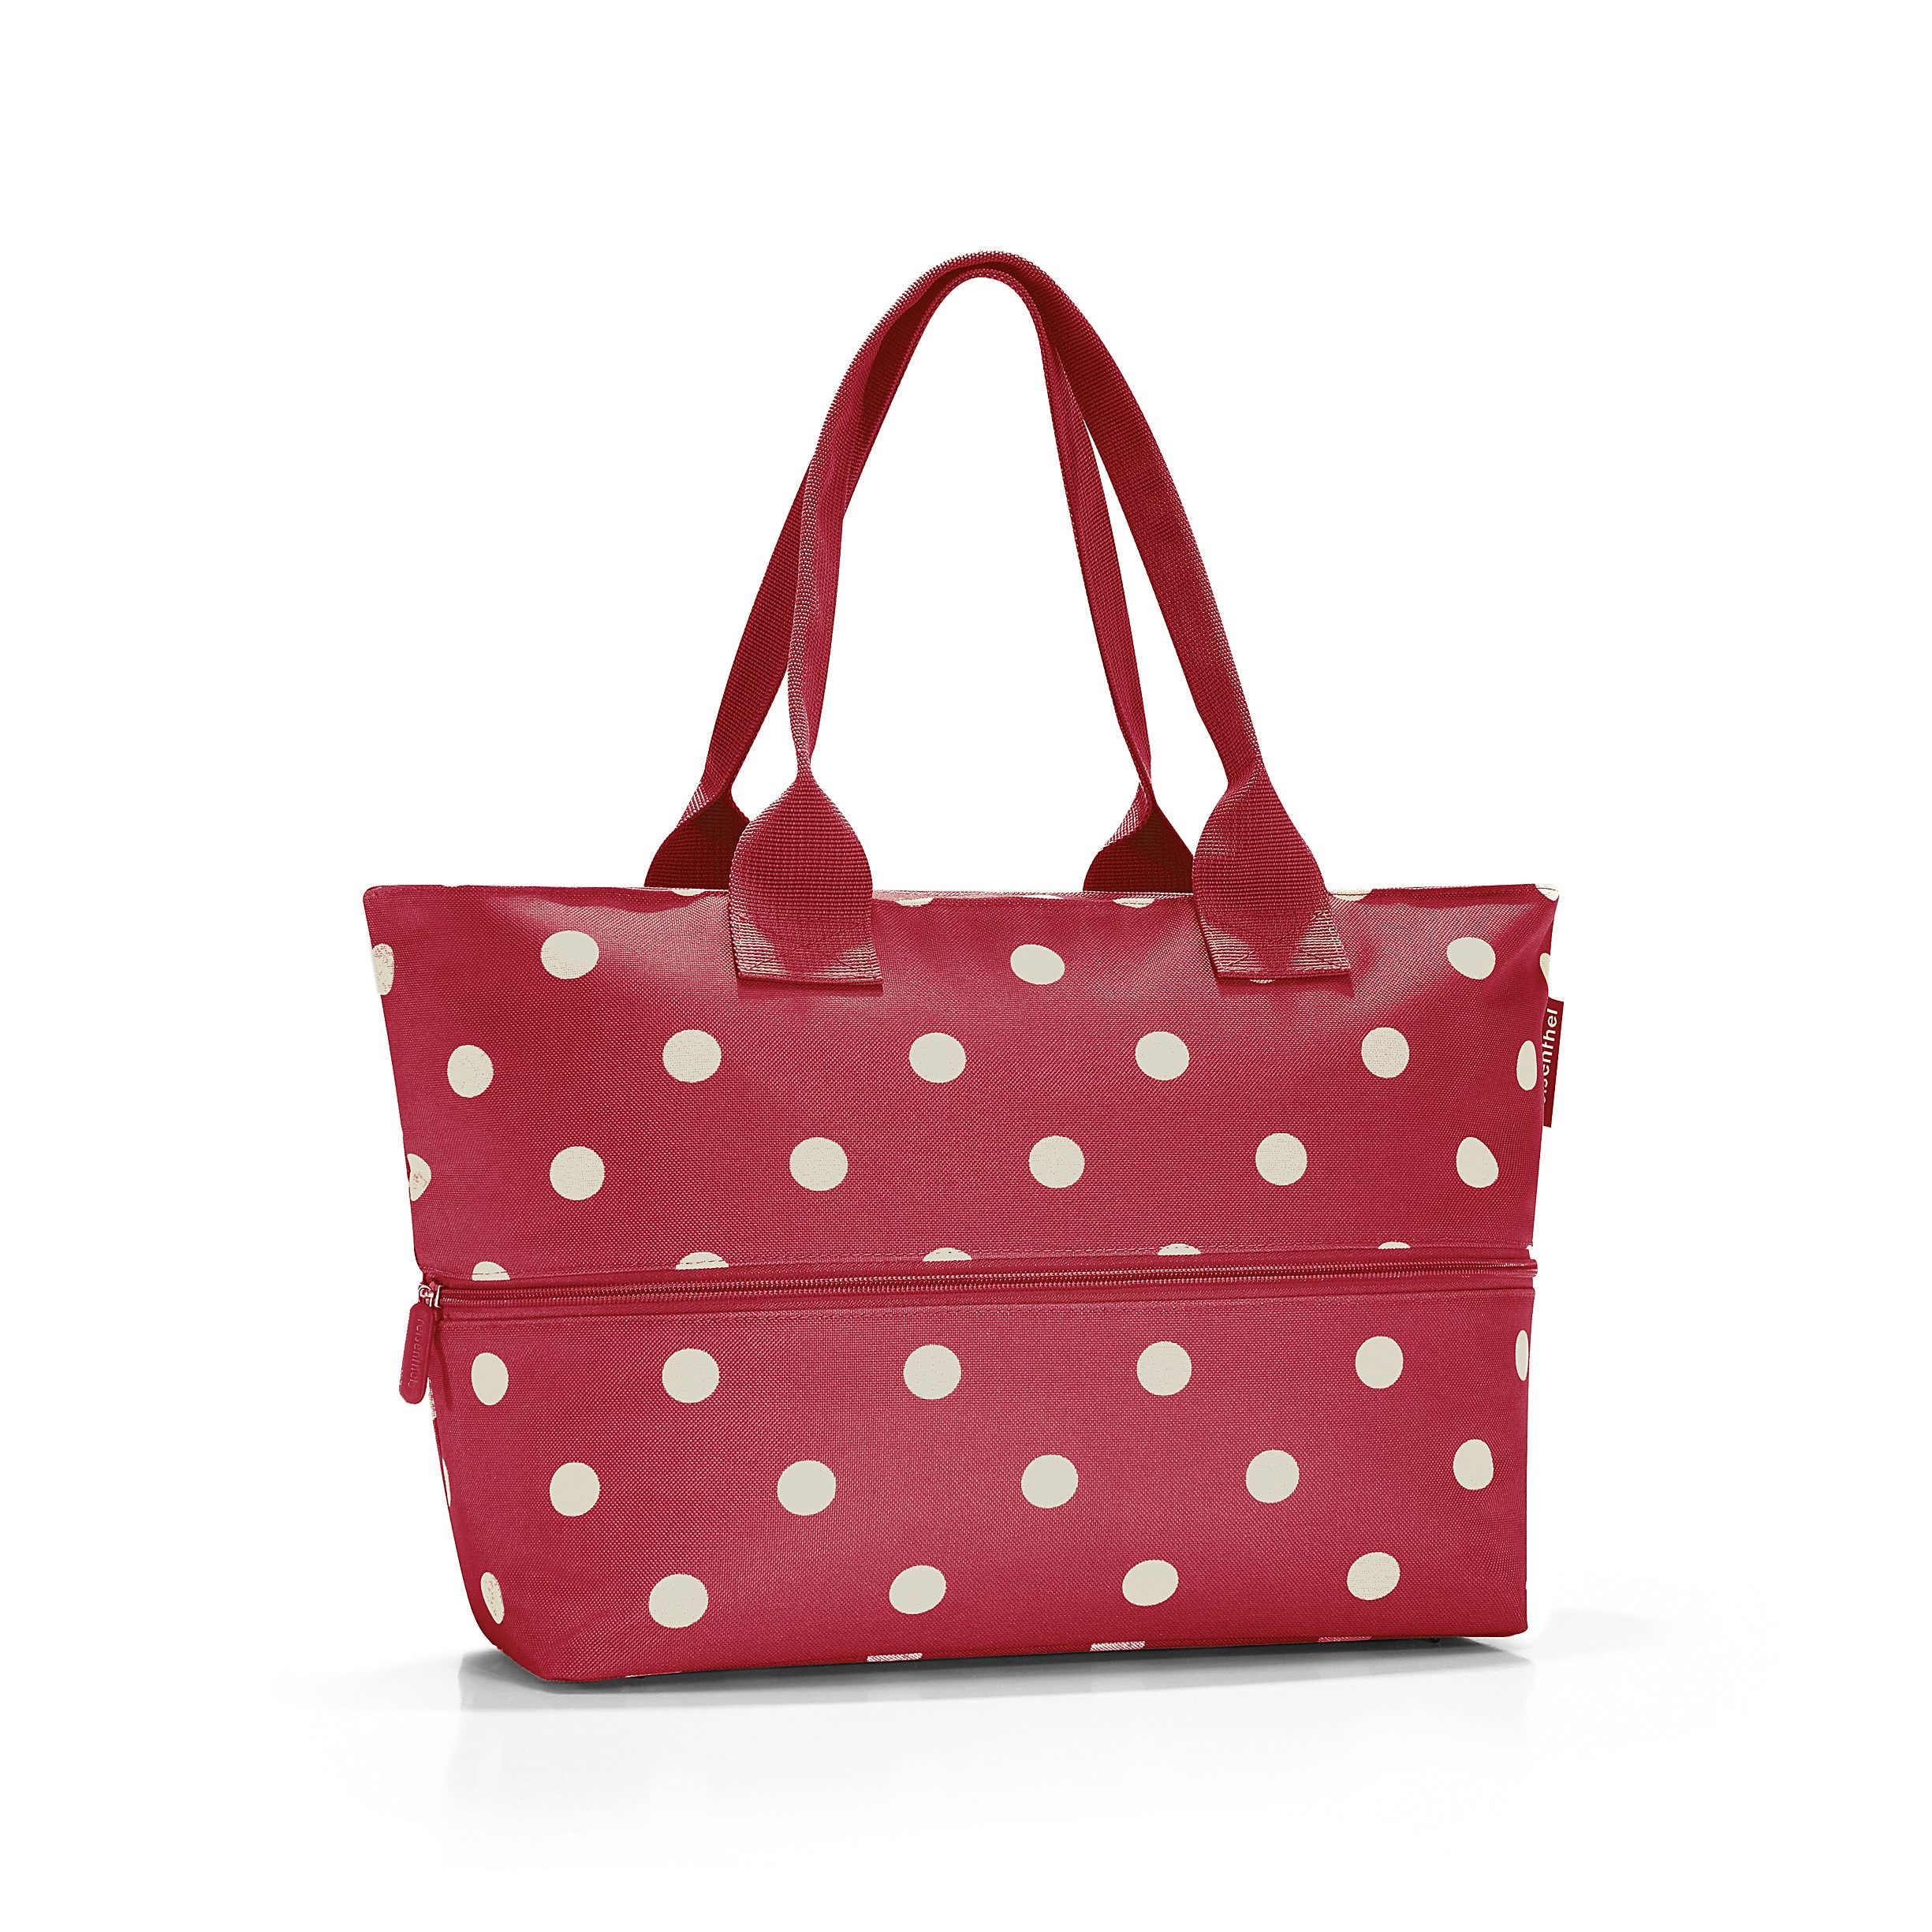 REISENTHEL® Shopper e1 ruby dots